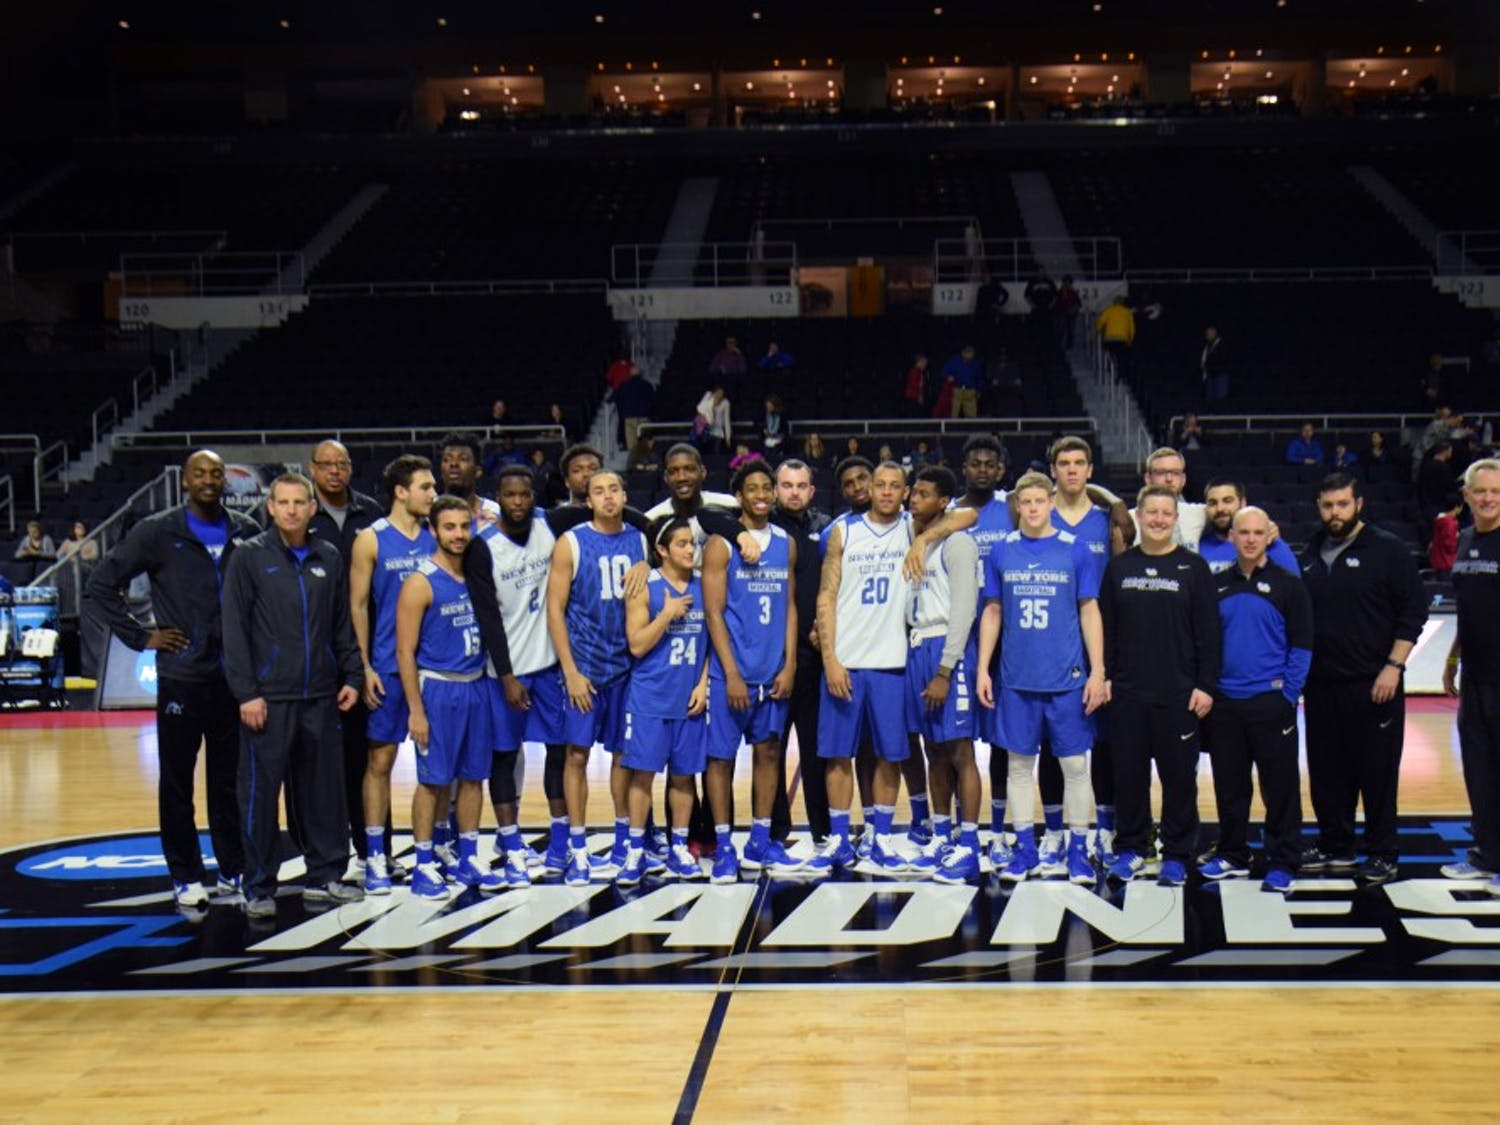 The Buffalo men's basketball team prepared for itsupcomingNCAA Tournament game against Miamiin the Dunkin' Donuts Center in Providence, Rhode IslandWednesday afternoon. The Bulls are a No. 14 seed and were loose in demeanor while both speaking to the media and practicing. Tipoff for Thursday's game is set for 6:50 p.m.